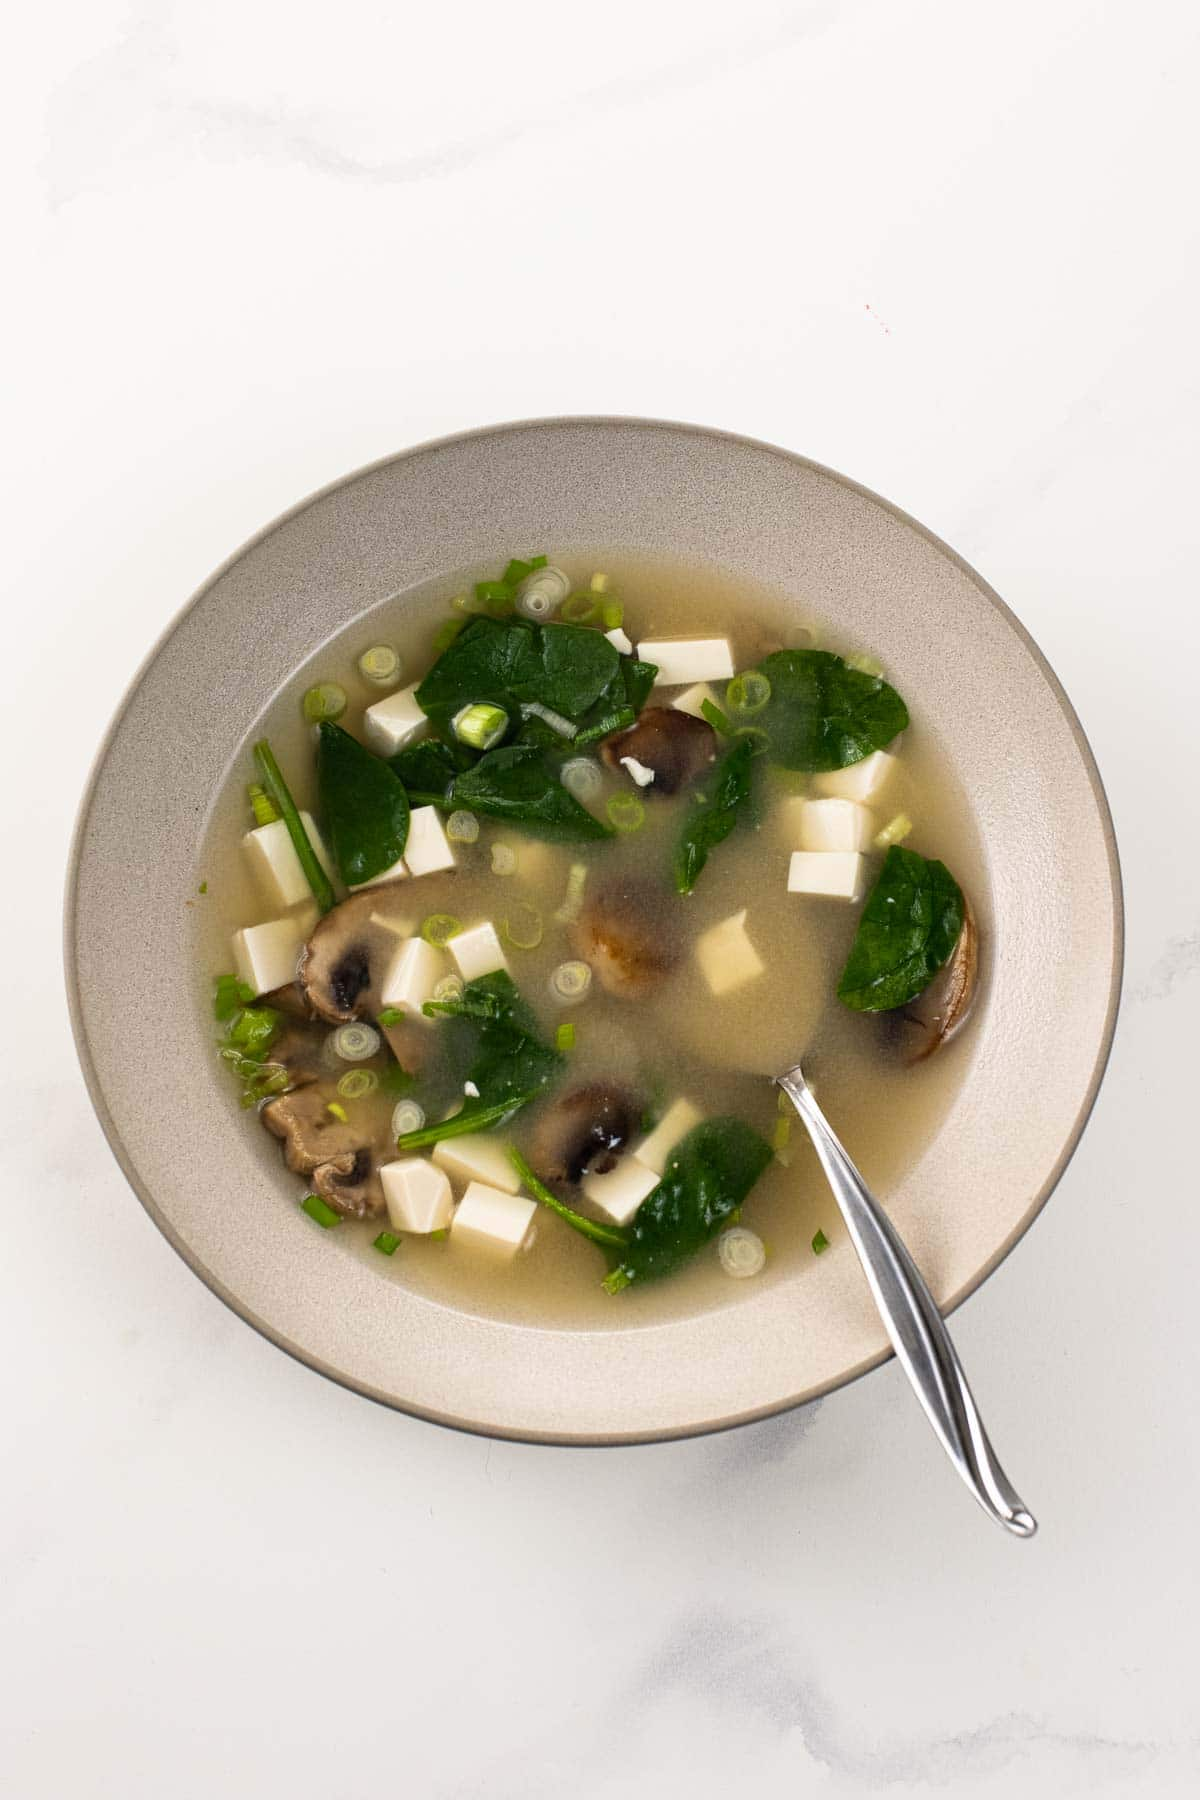 miso soup with mushrooms and spinach in a bowl with a spoon